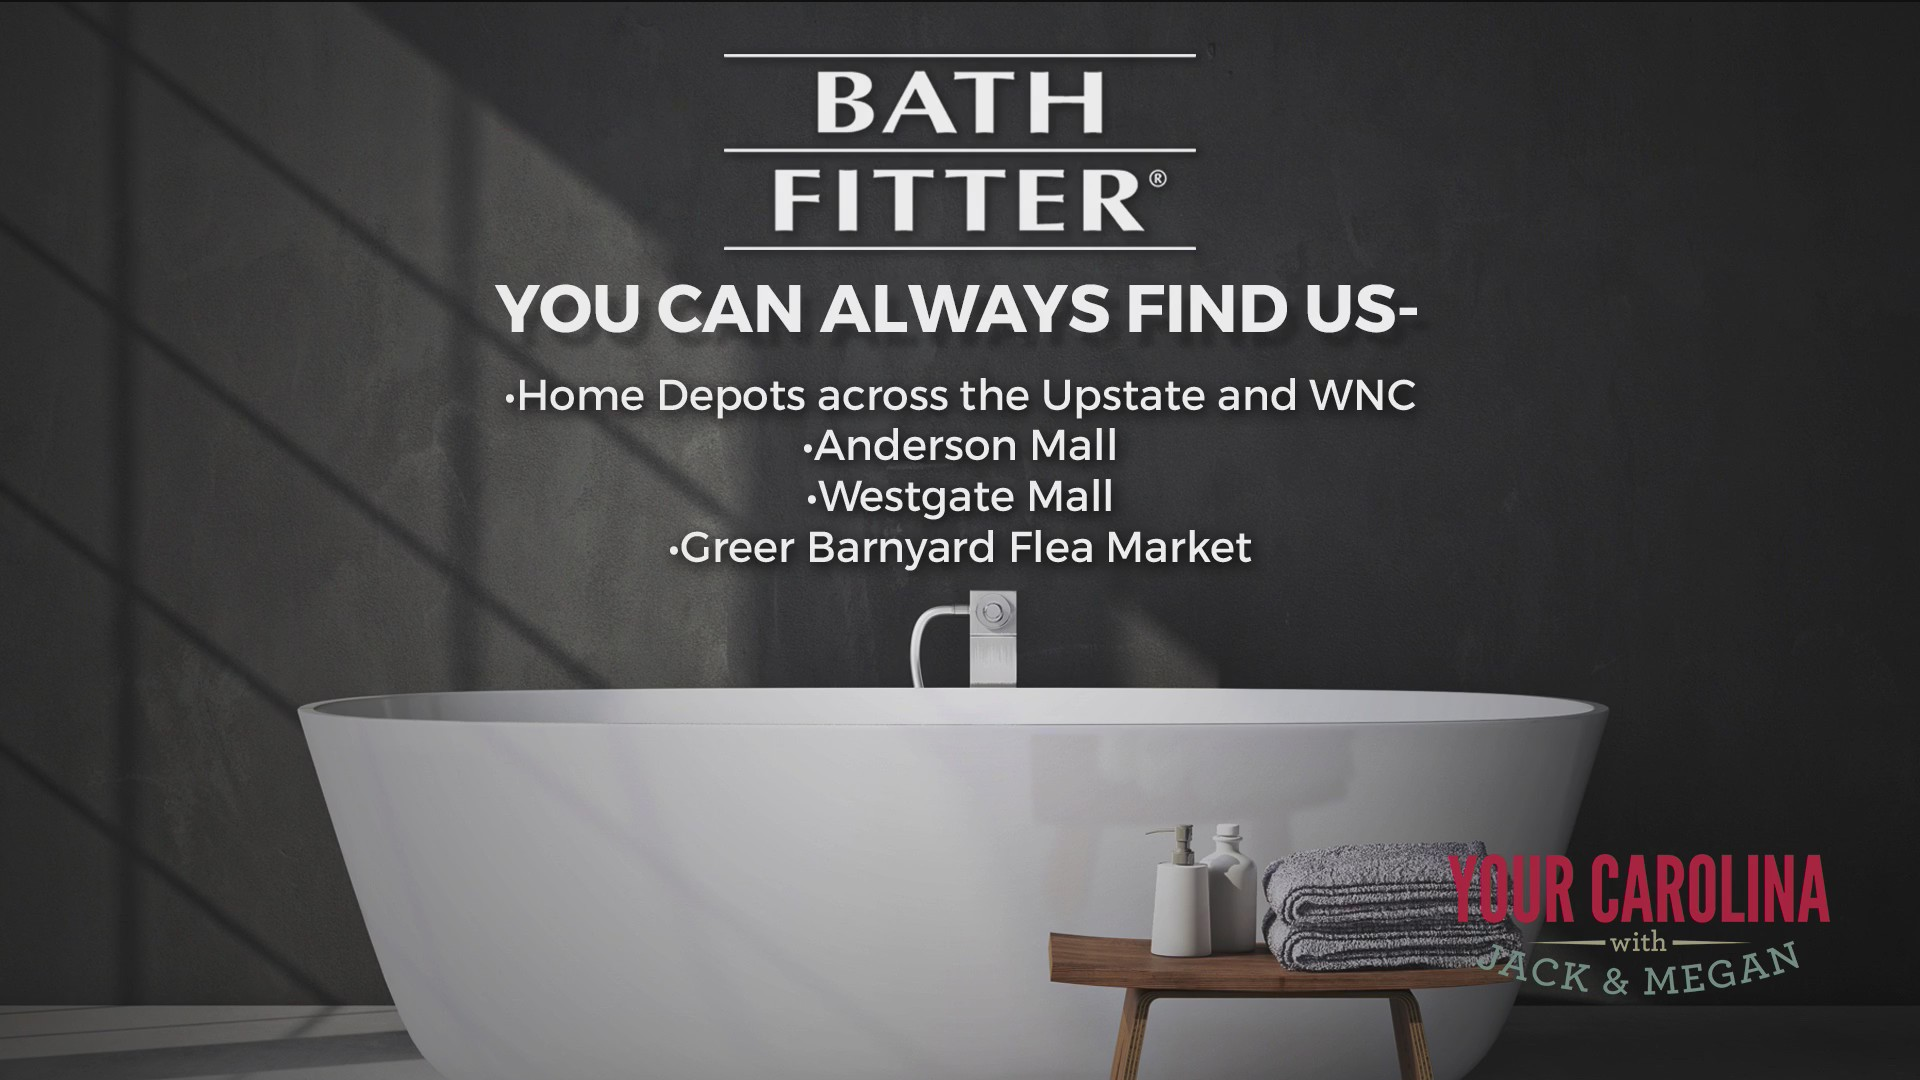 Bathfitter Events This Month